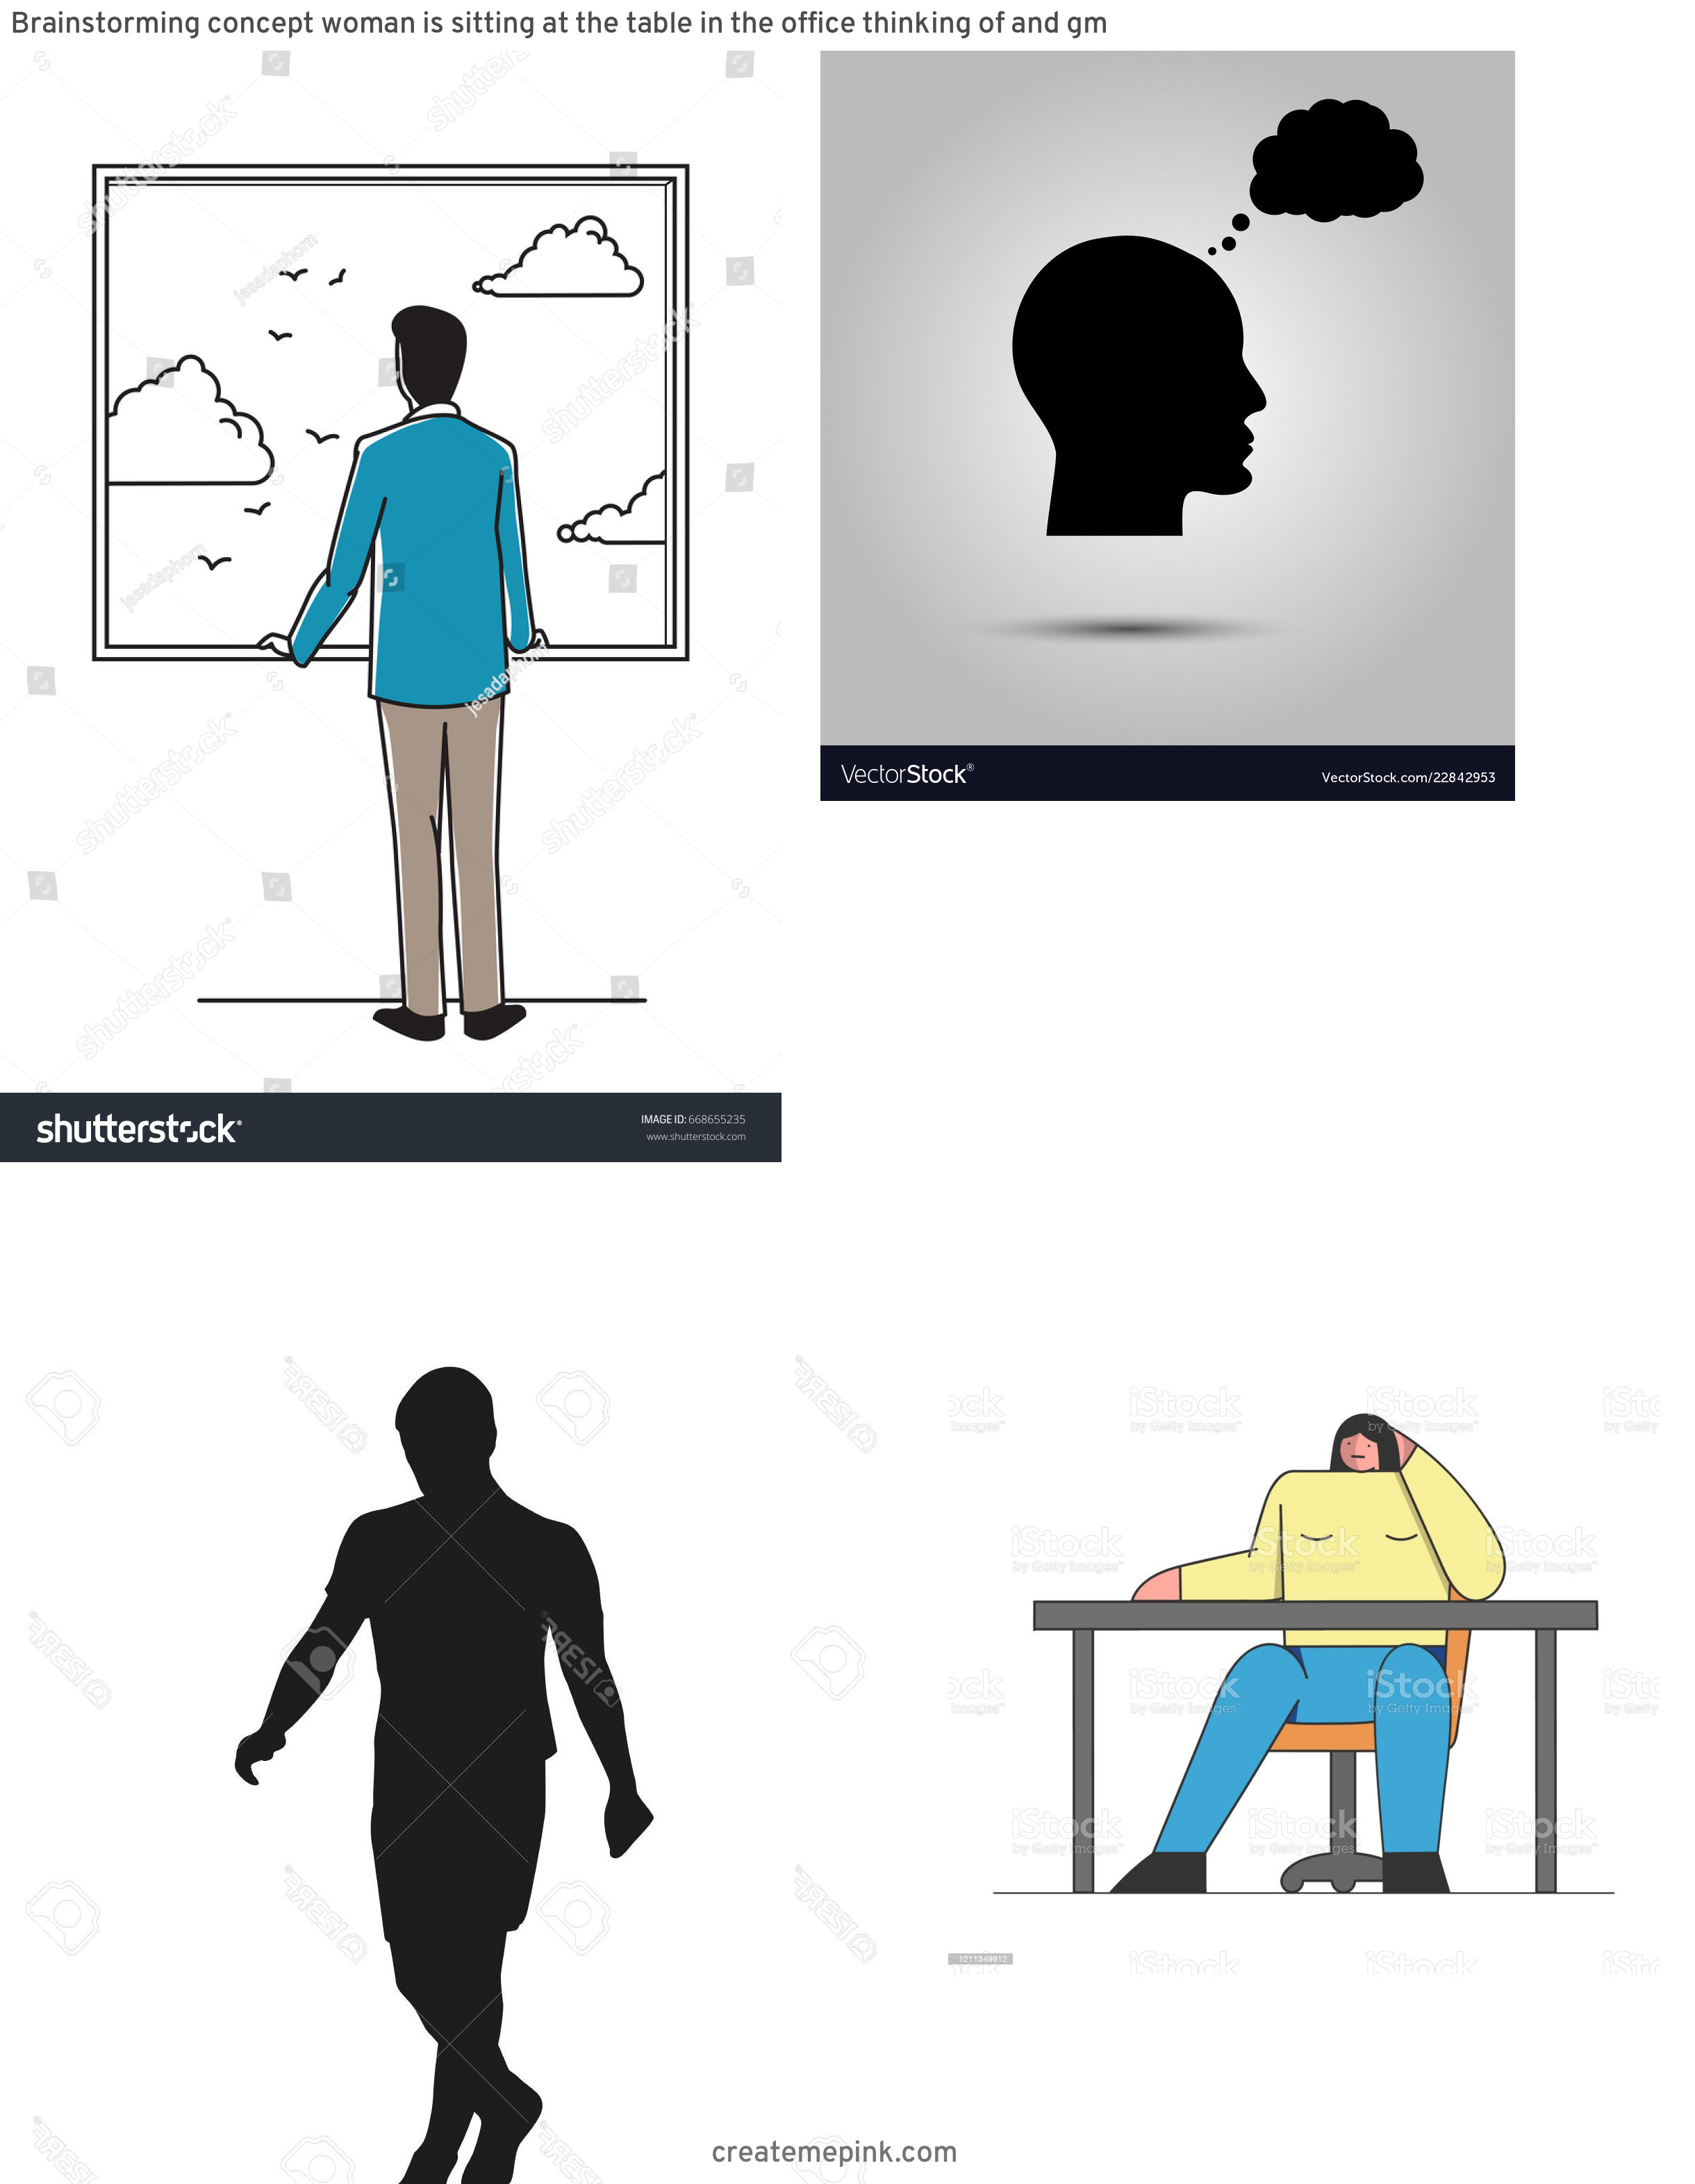 Person Thinking Outline Vector: Brainstorming Concept Woman Is Sitting At The Table In The Office Thinking Of And Gm